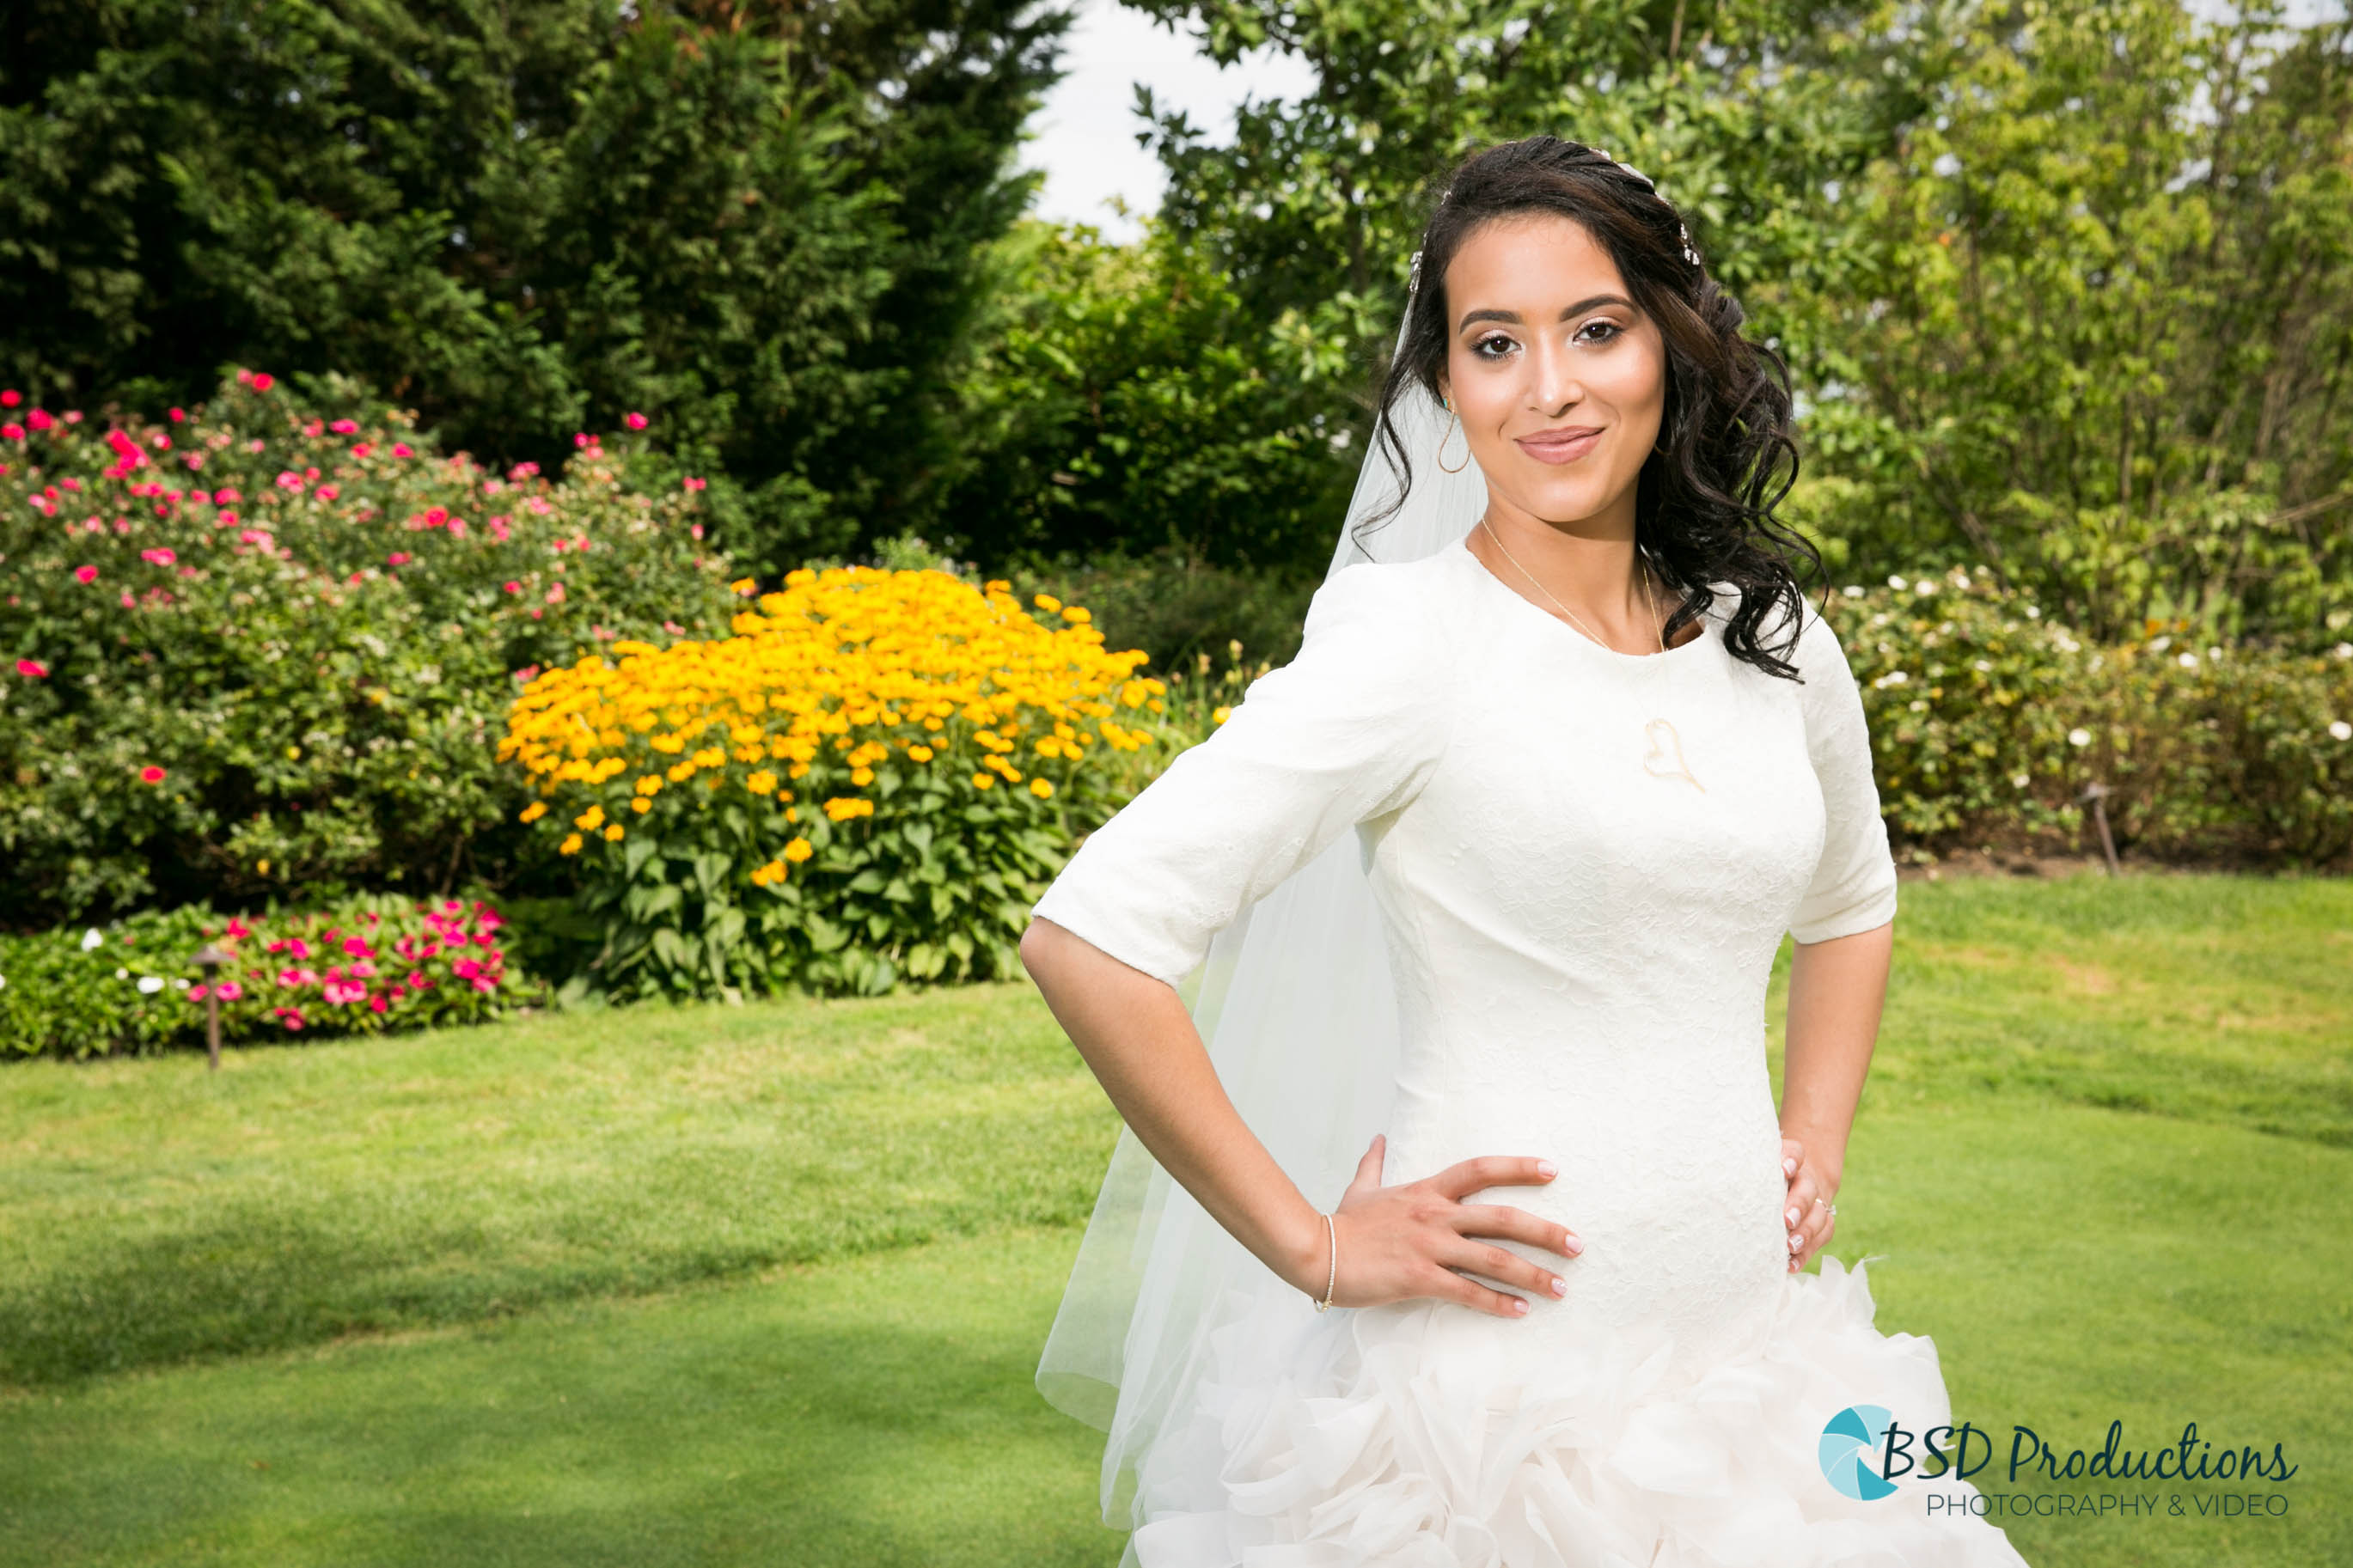 UH5A2637 Wedding – BSD Productions Photography